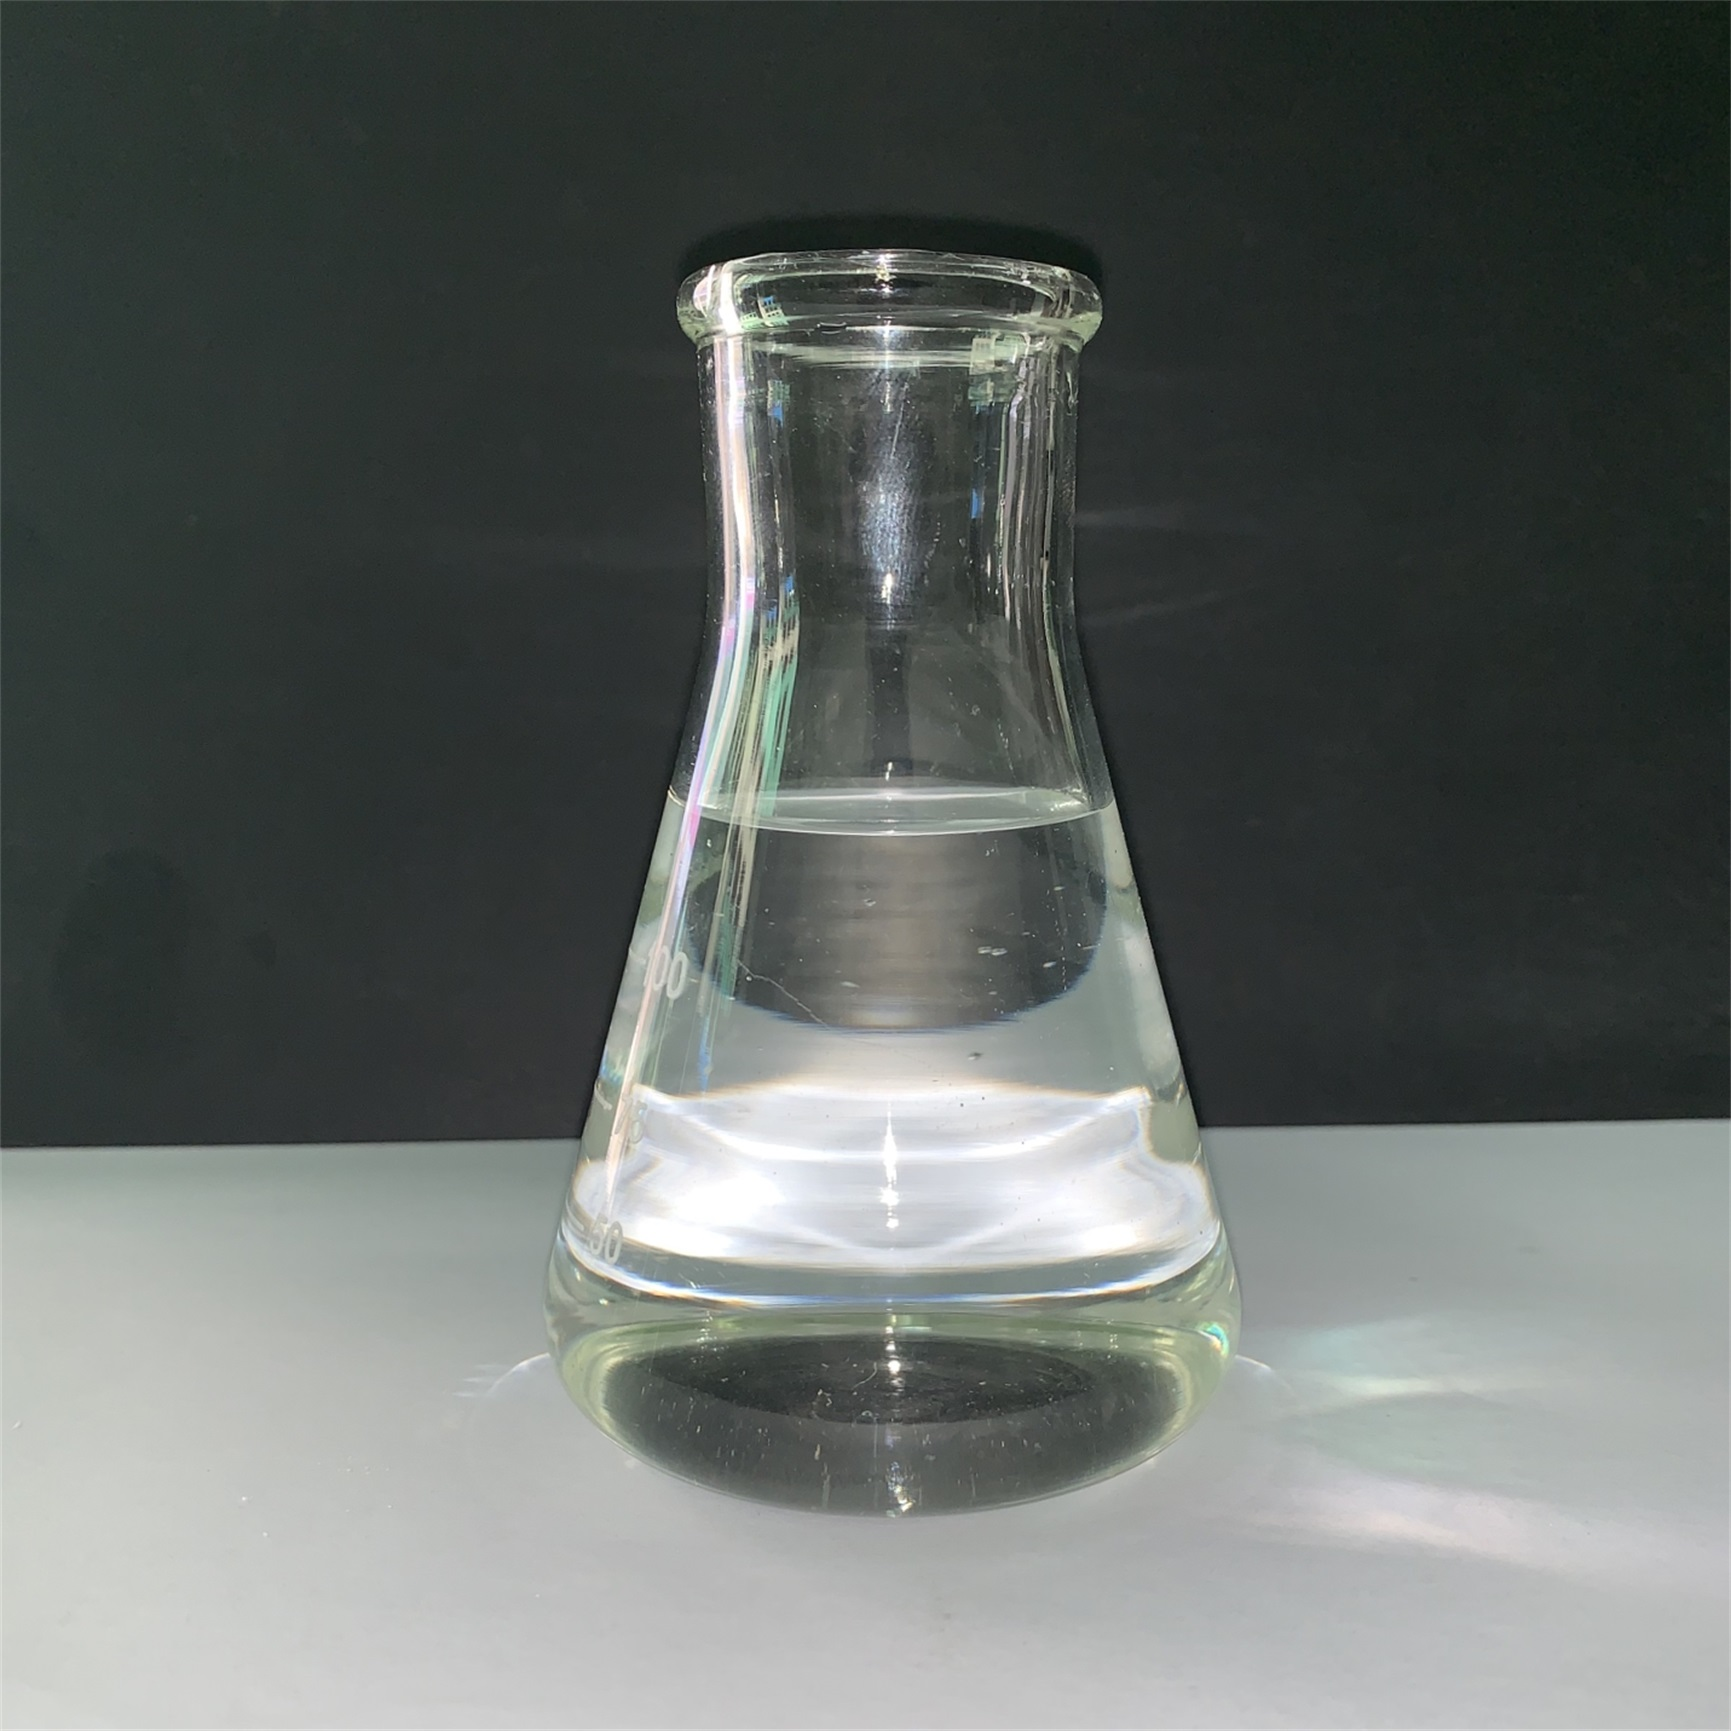 Huijinchuan Chemical Array image221